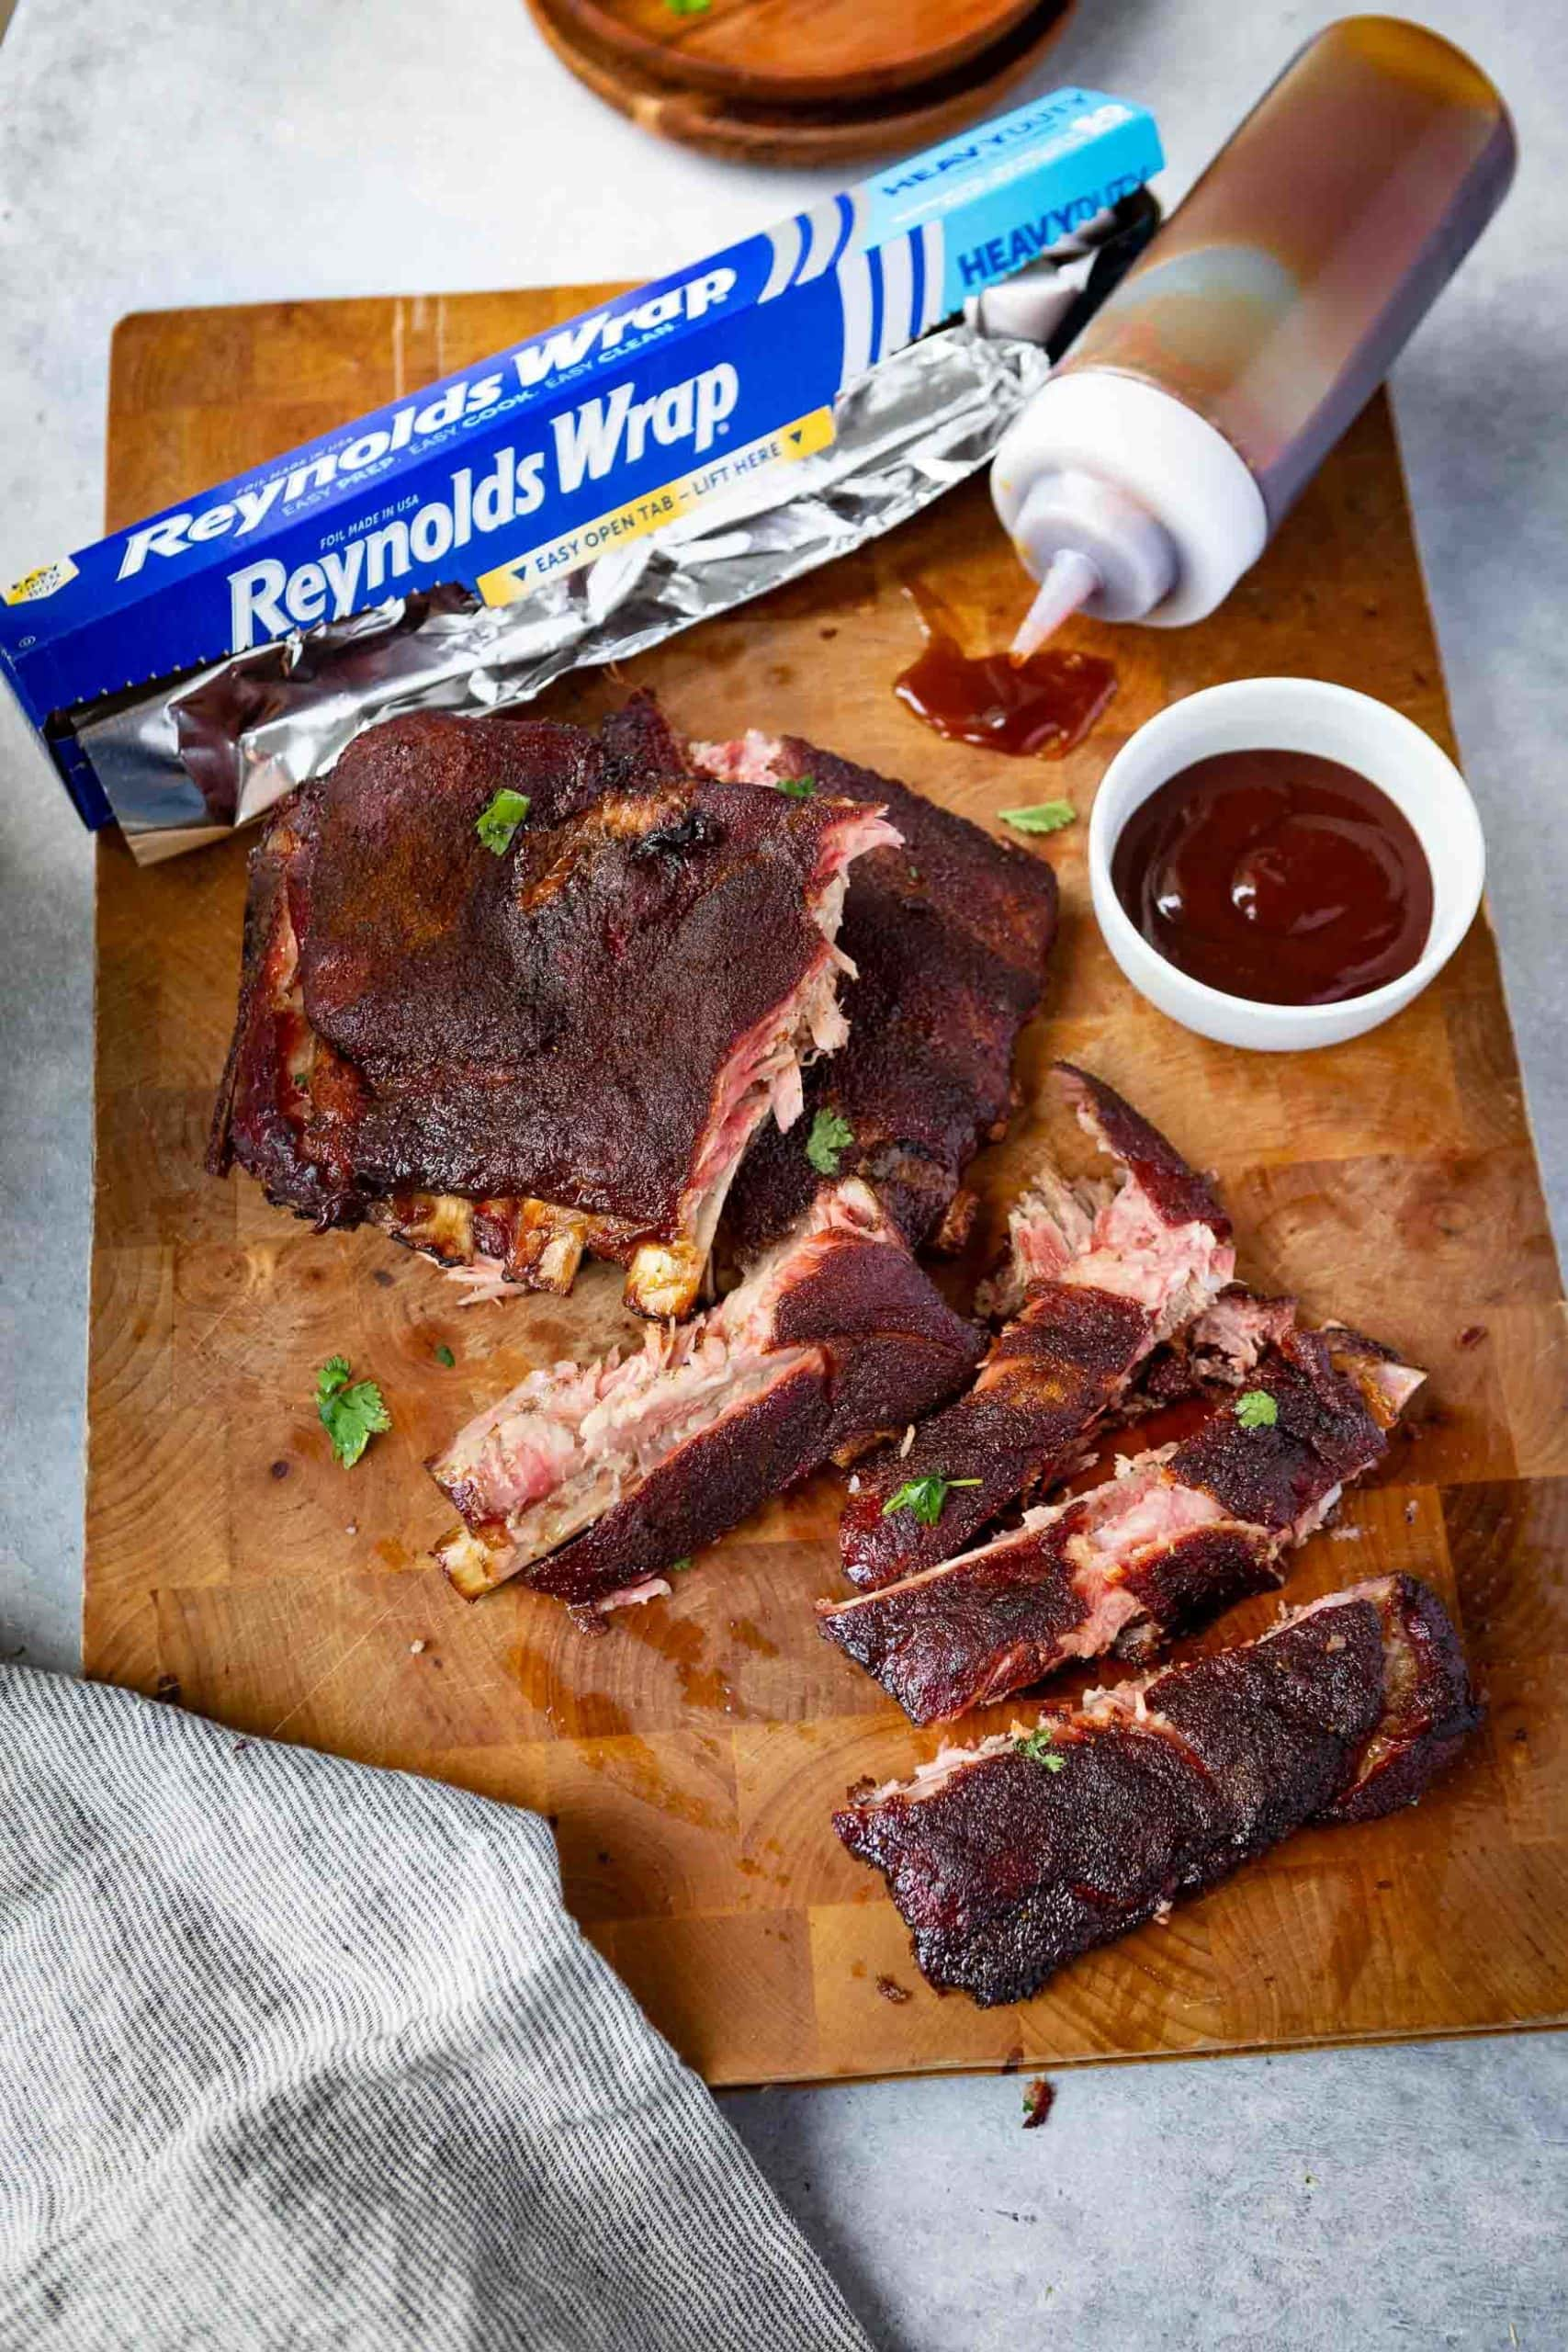 a photo of a rack pf grilled spare ribs broken apart on a wooden cutting board. there is a box of reynolds wrap next to the ribs and a small bowl of bbq sauce on the side as well as a sauce bottle with bbq sauce in it.